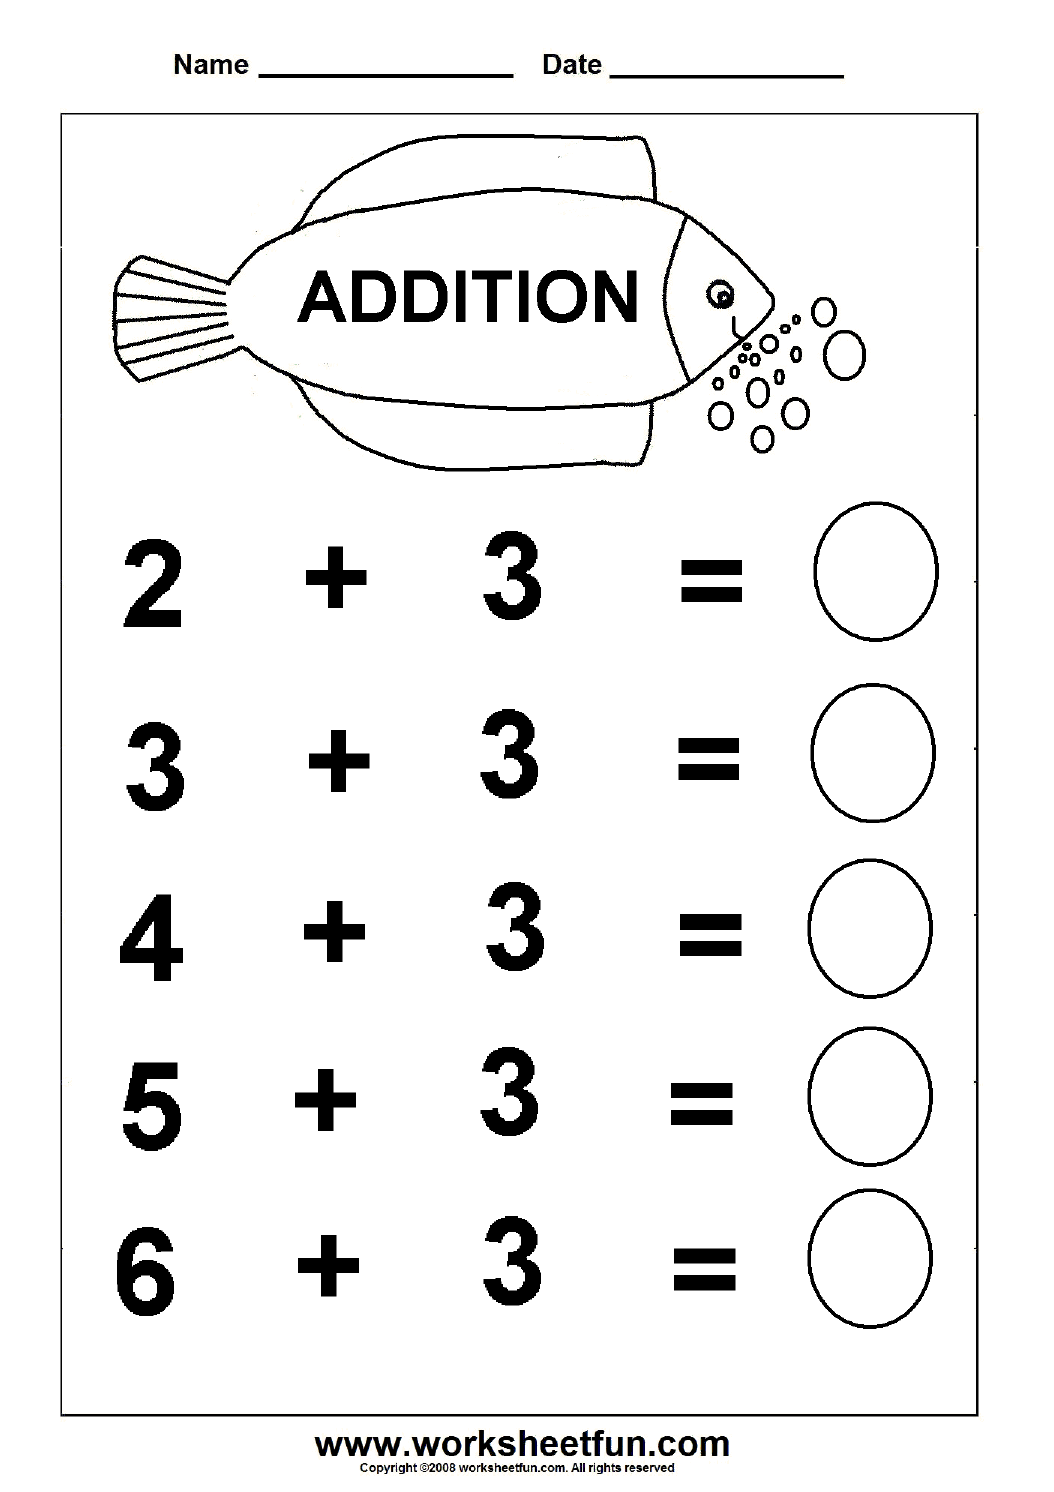 Uncategorized Free Addition Worksheets addition basic facts free printable worksheets beginner 6 kindergarten worksheets